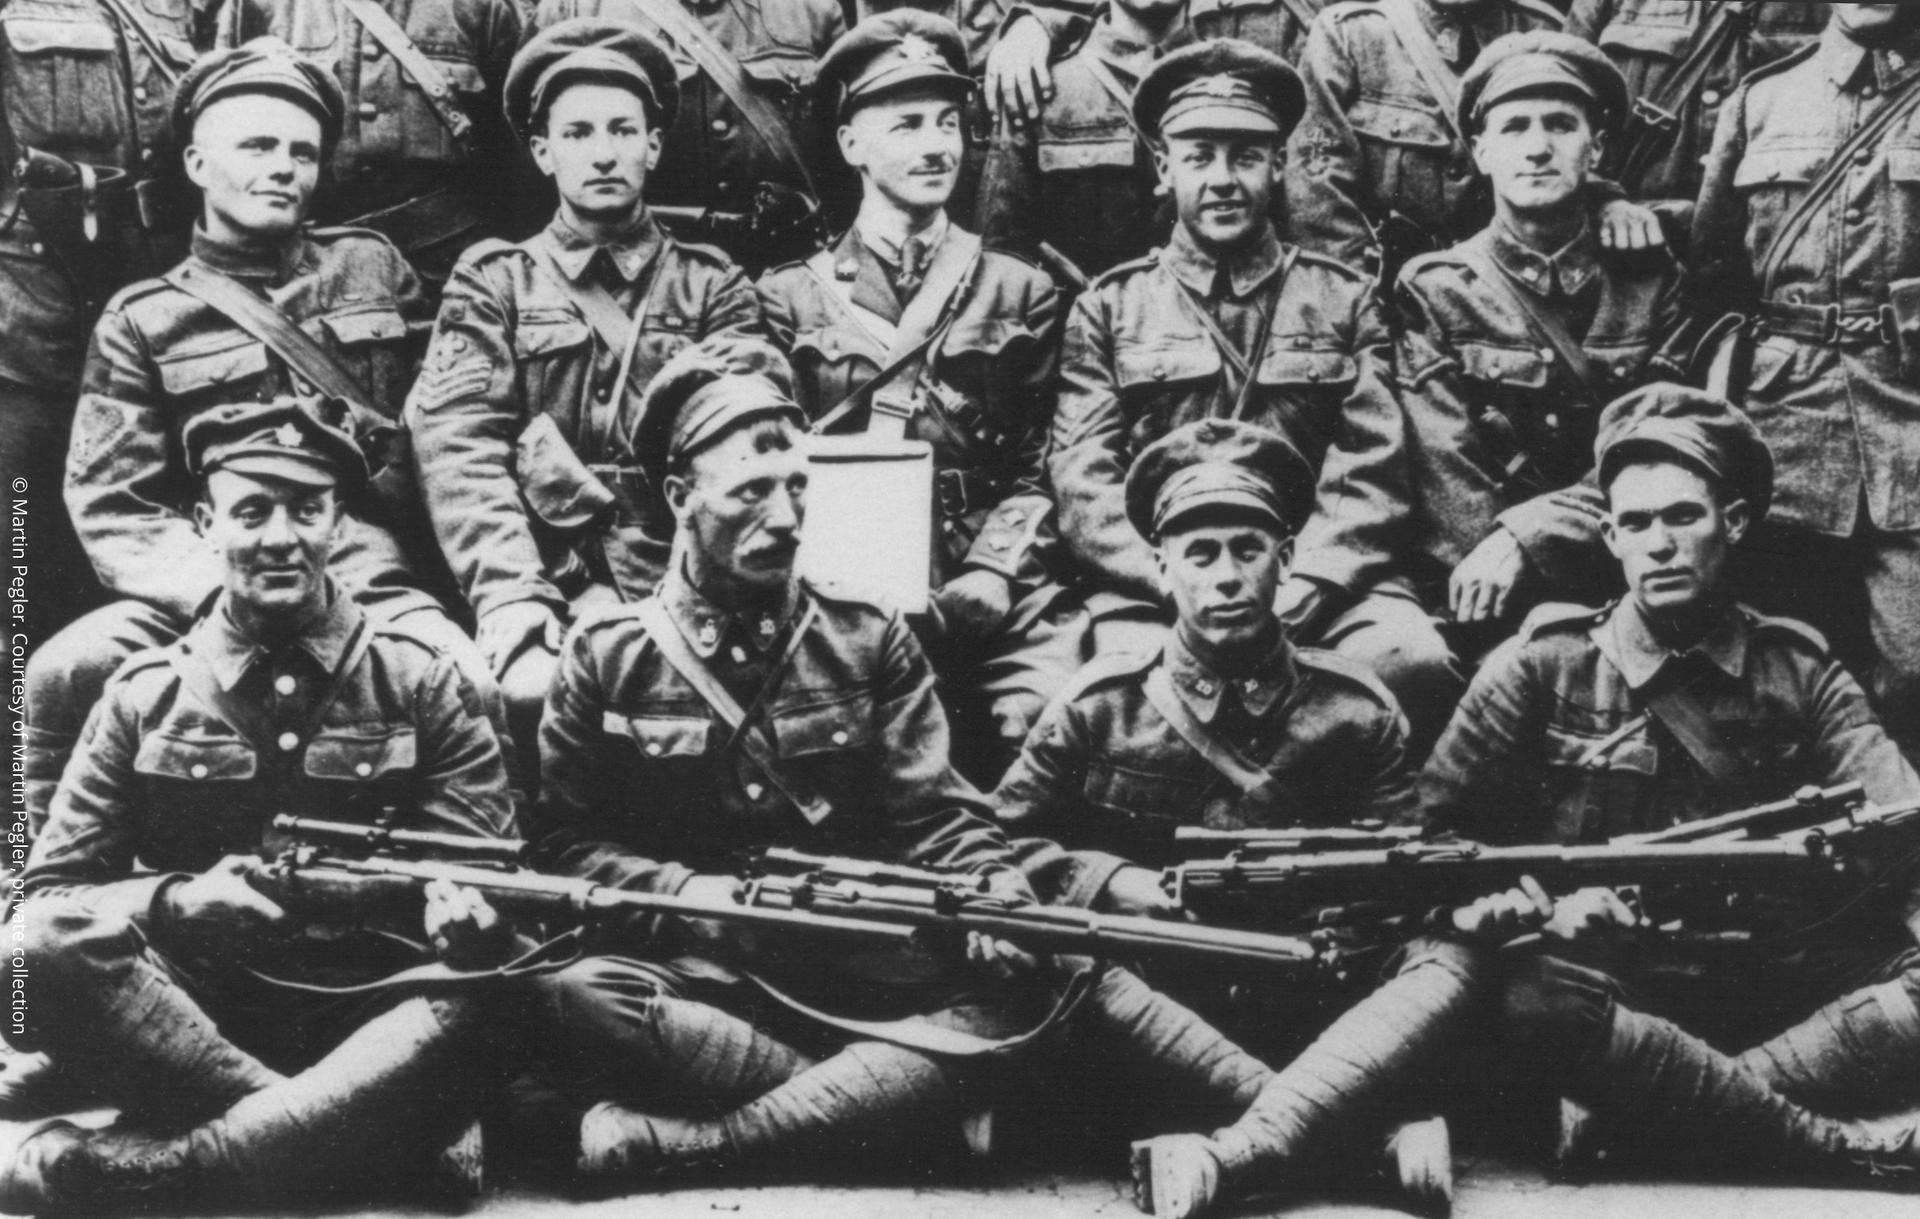 Canadian snipers of the 20th Battalion, CEF. The man front left holds an SMLE with Winchester A5 scope, the others appear to have SMLEs with PPCo scopes and mounts. The latter was offset, forcing the sniper to either raise their head from the stock when aiming, or to shoot with the left eye, compromising accuracy. Canada pursued the Ross rifle mainly because Britain would not provide them with SMLEs until later in the War. © Courtesy of Martin Pegler, private collection